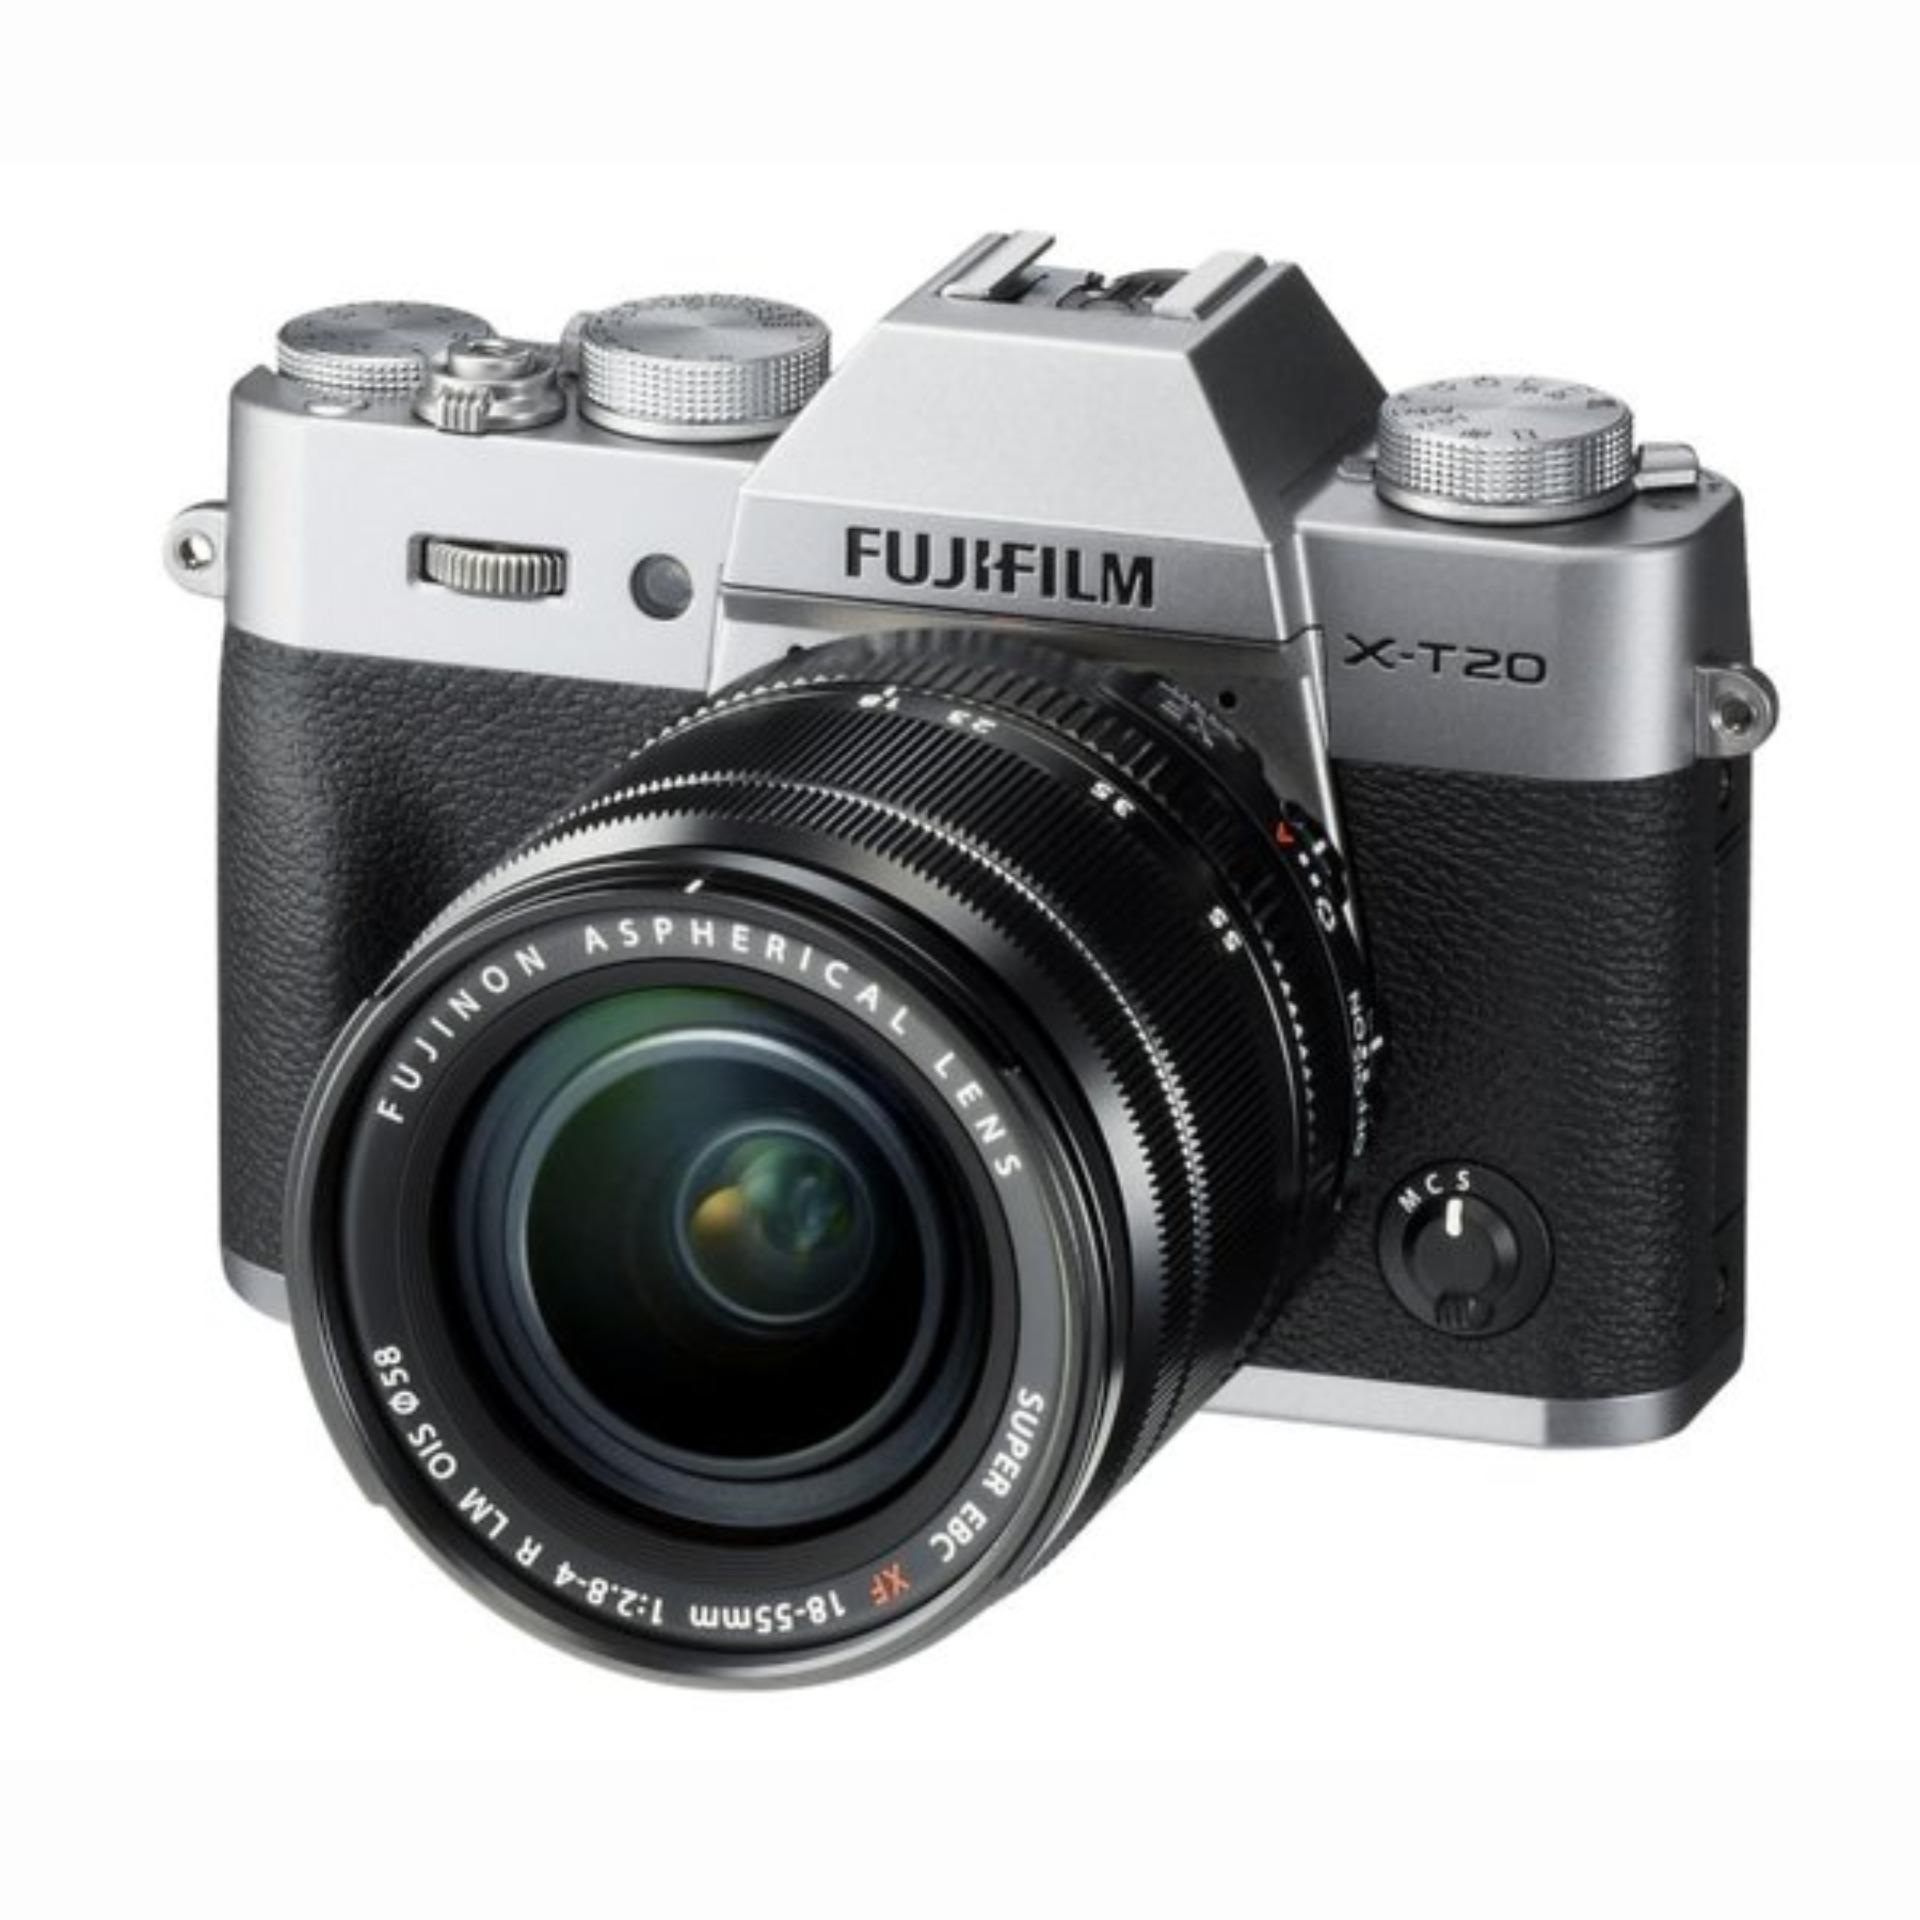 Fujifilm X-T20 (Silver) Mirrorless Digital Camera + Fujinon XF 18-55mm Lens